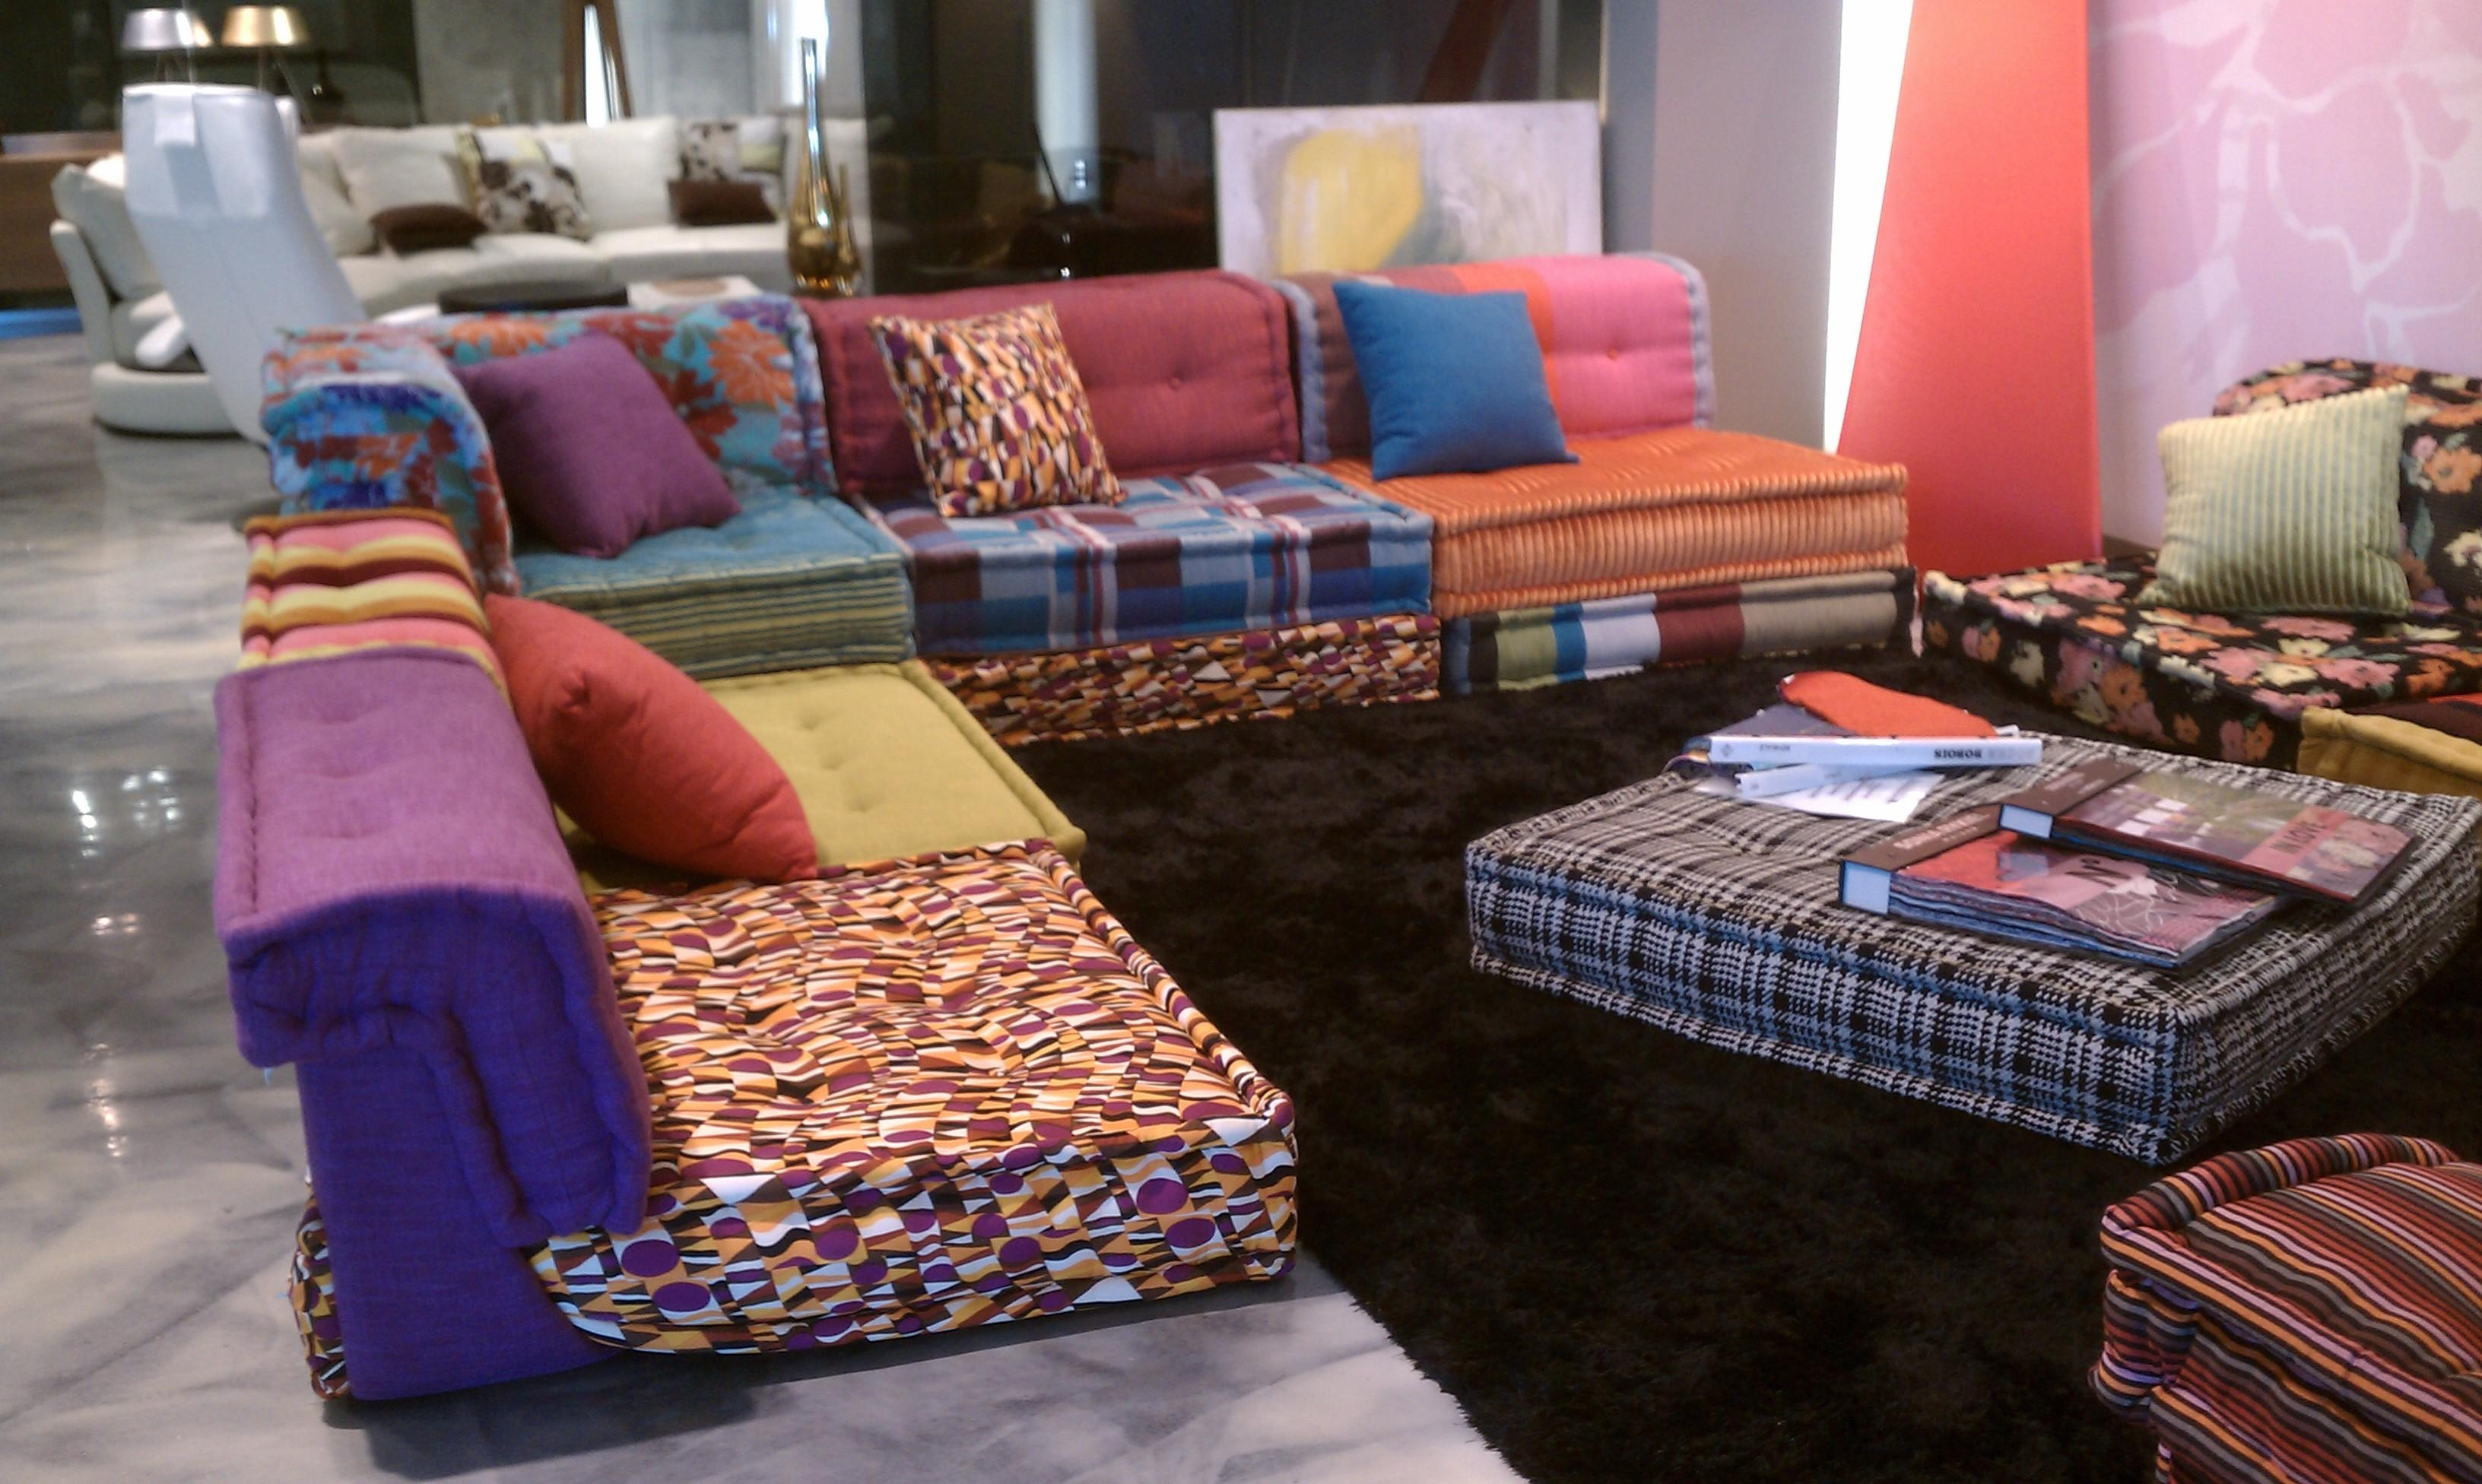 Dream Couch: Missoni Bohemian Sofa | The Cherie Bomb With Regard To Mahjong Sofas (Image 4 of 20)